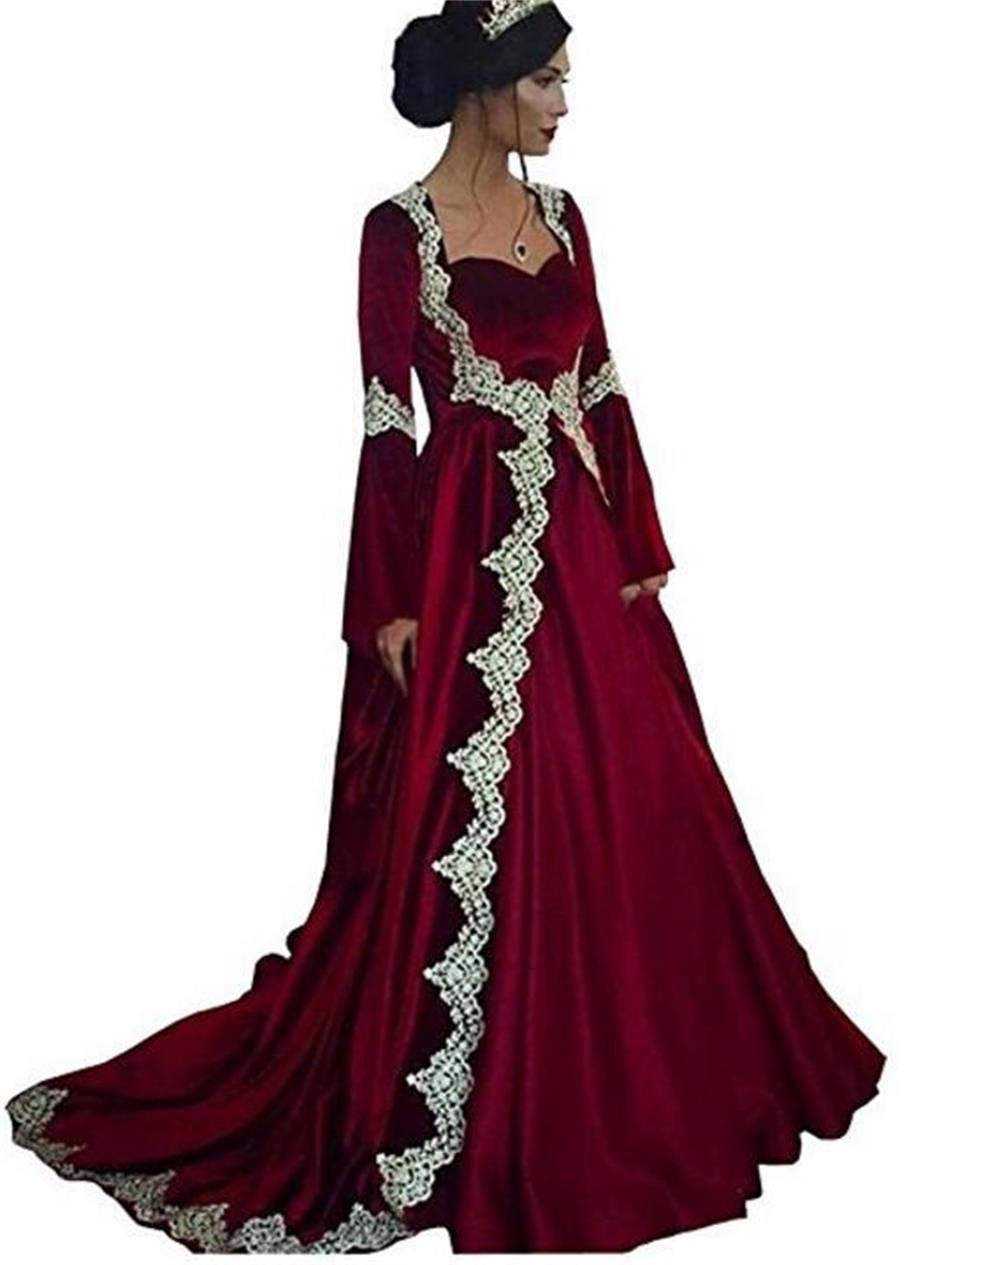 Dydsz Women's Medieval Evening Dresses Formal Gown Long Sleeves 2 Piece With Train D251 Burgundy 20 Plus